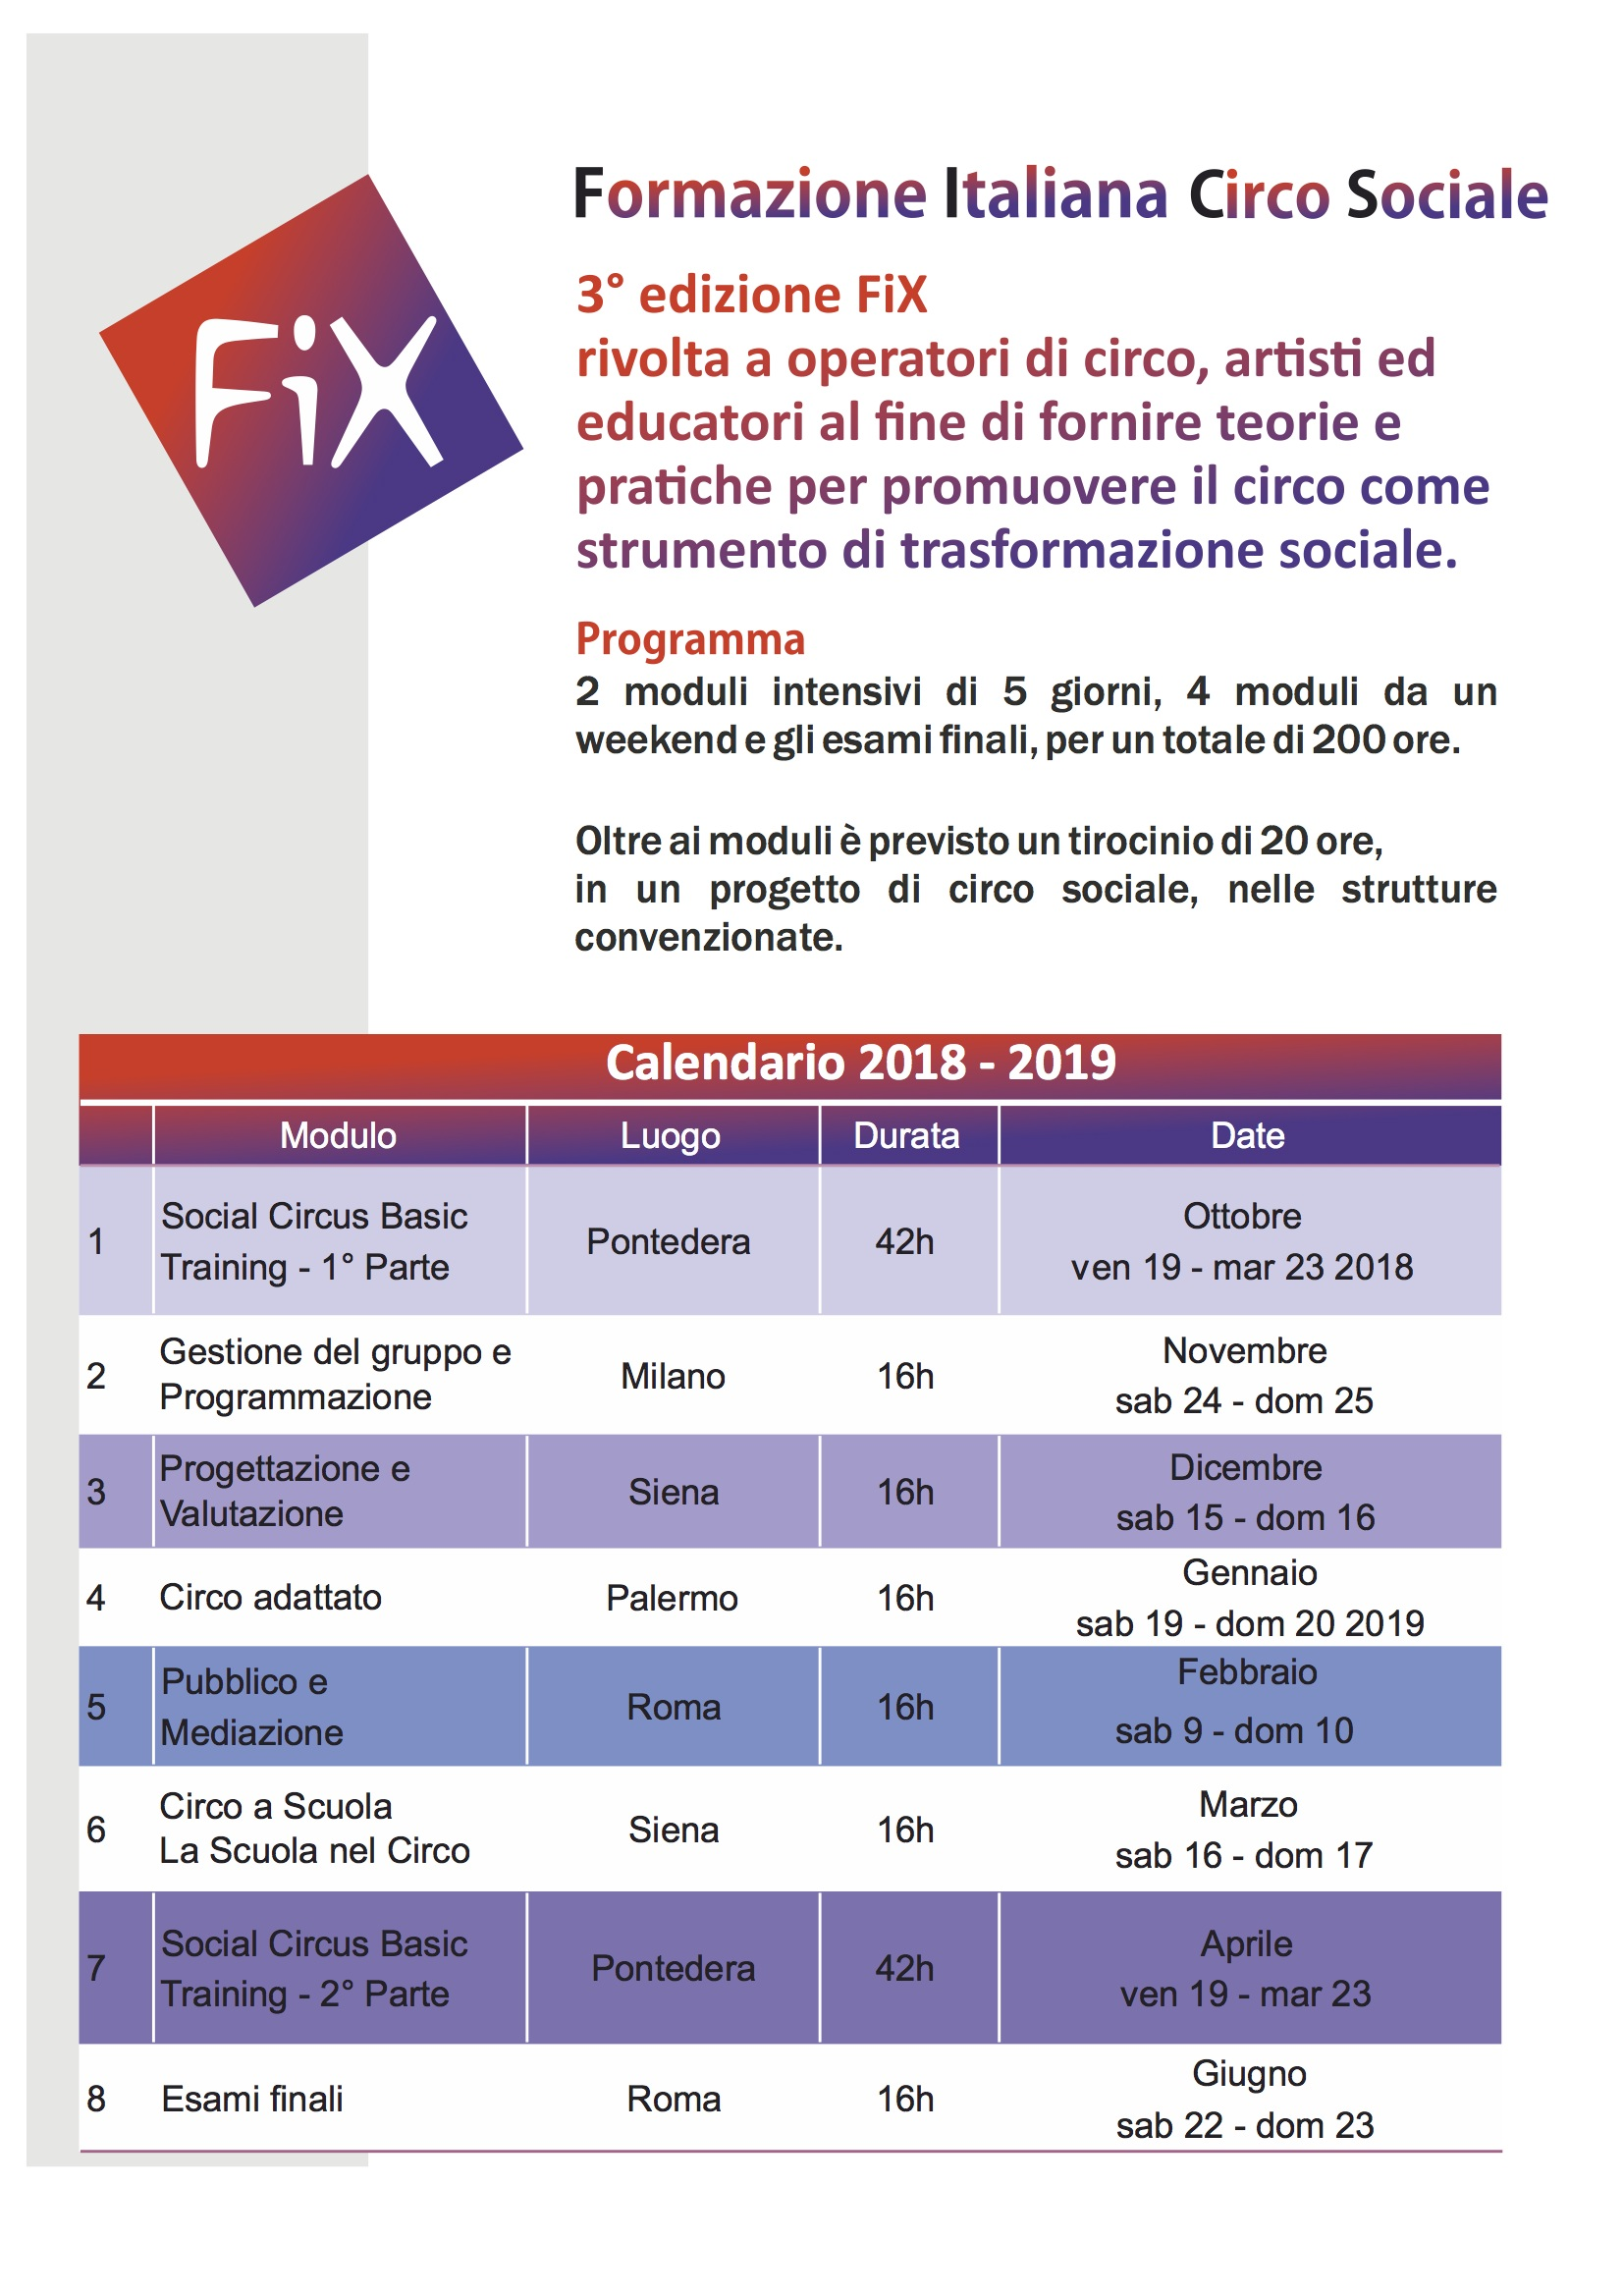 cartolina fix - calendario